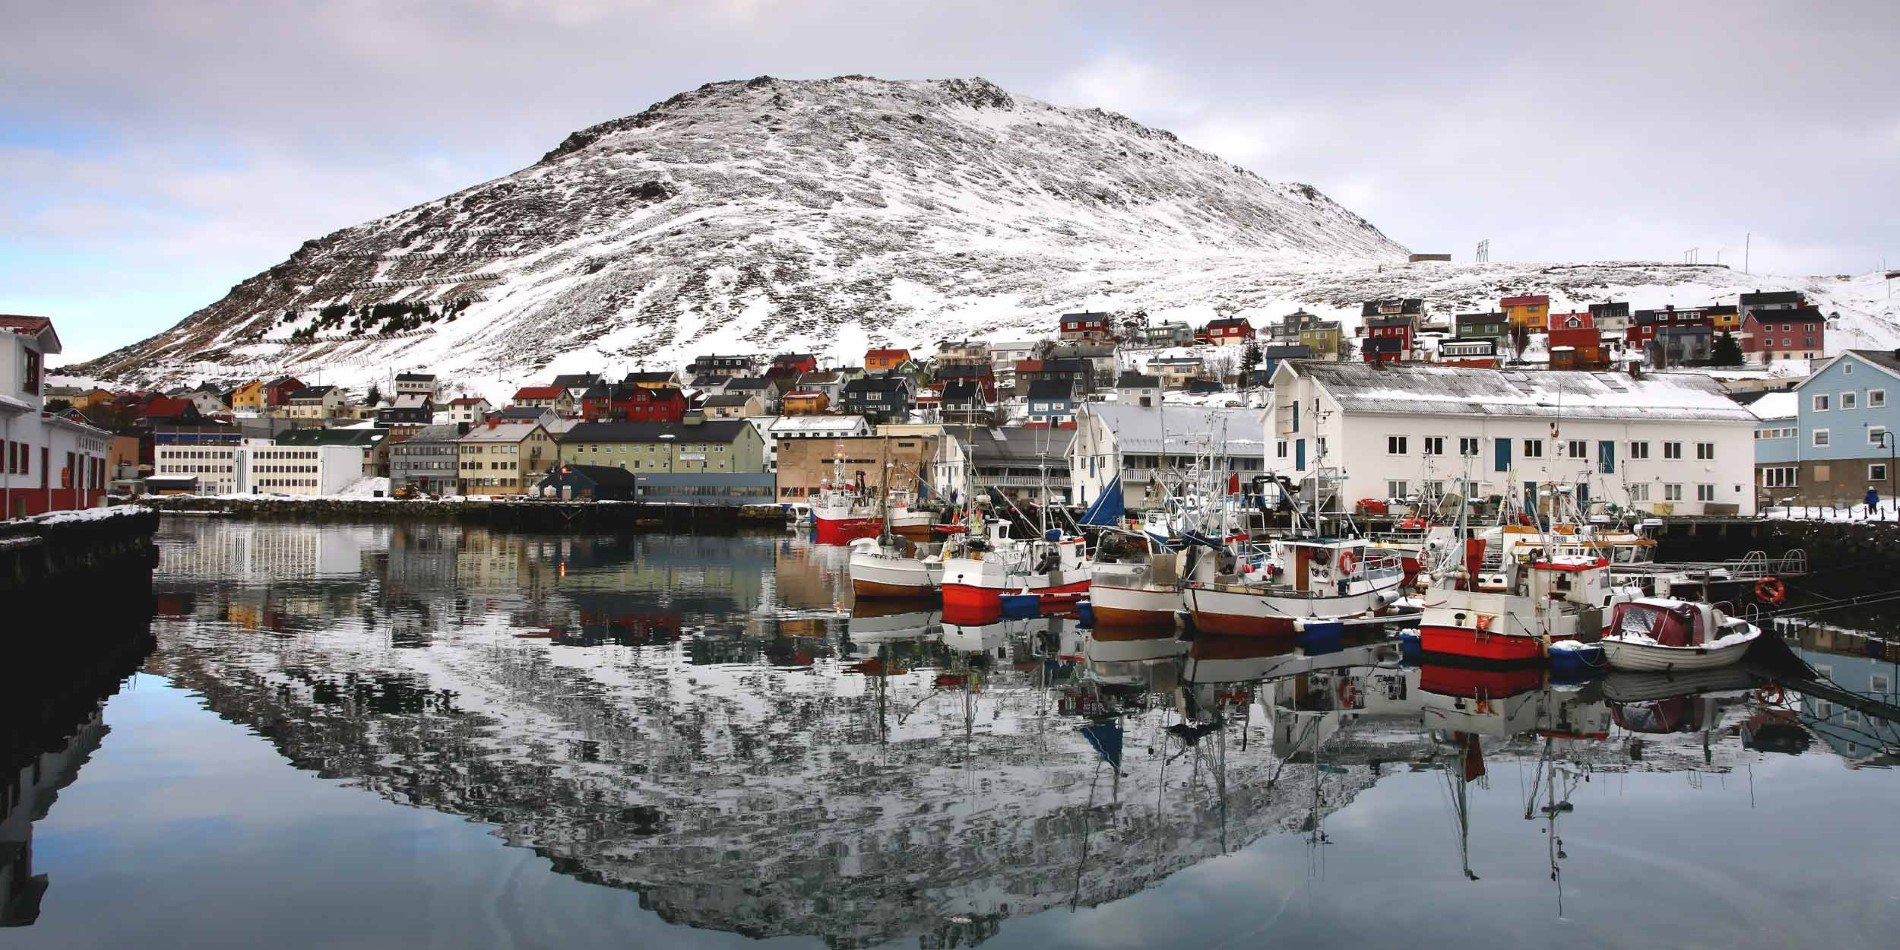 Port of Hånningsvåg